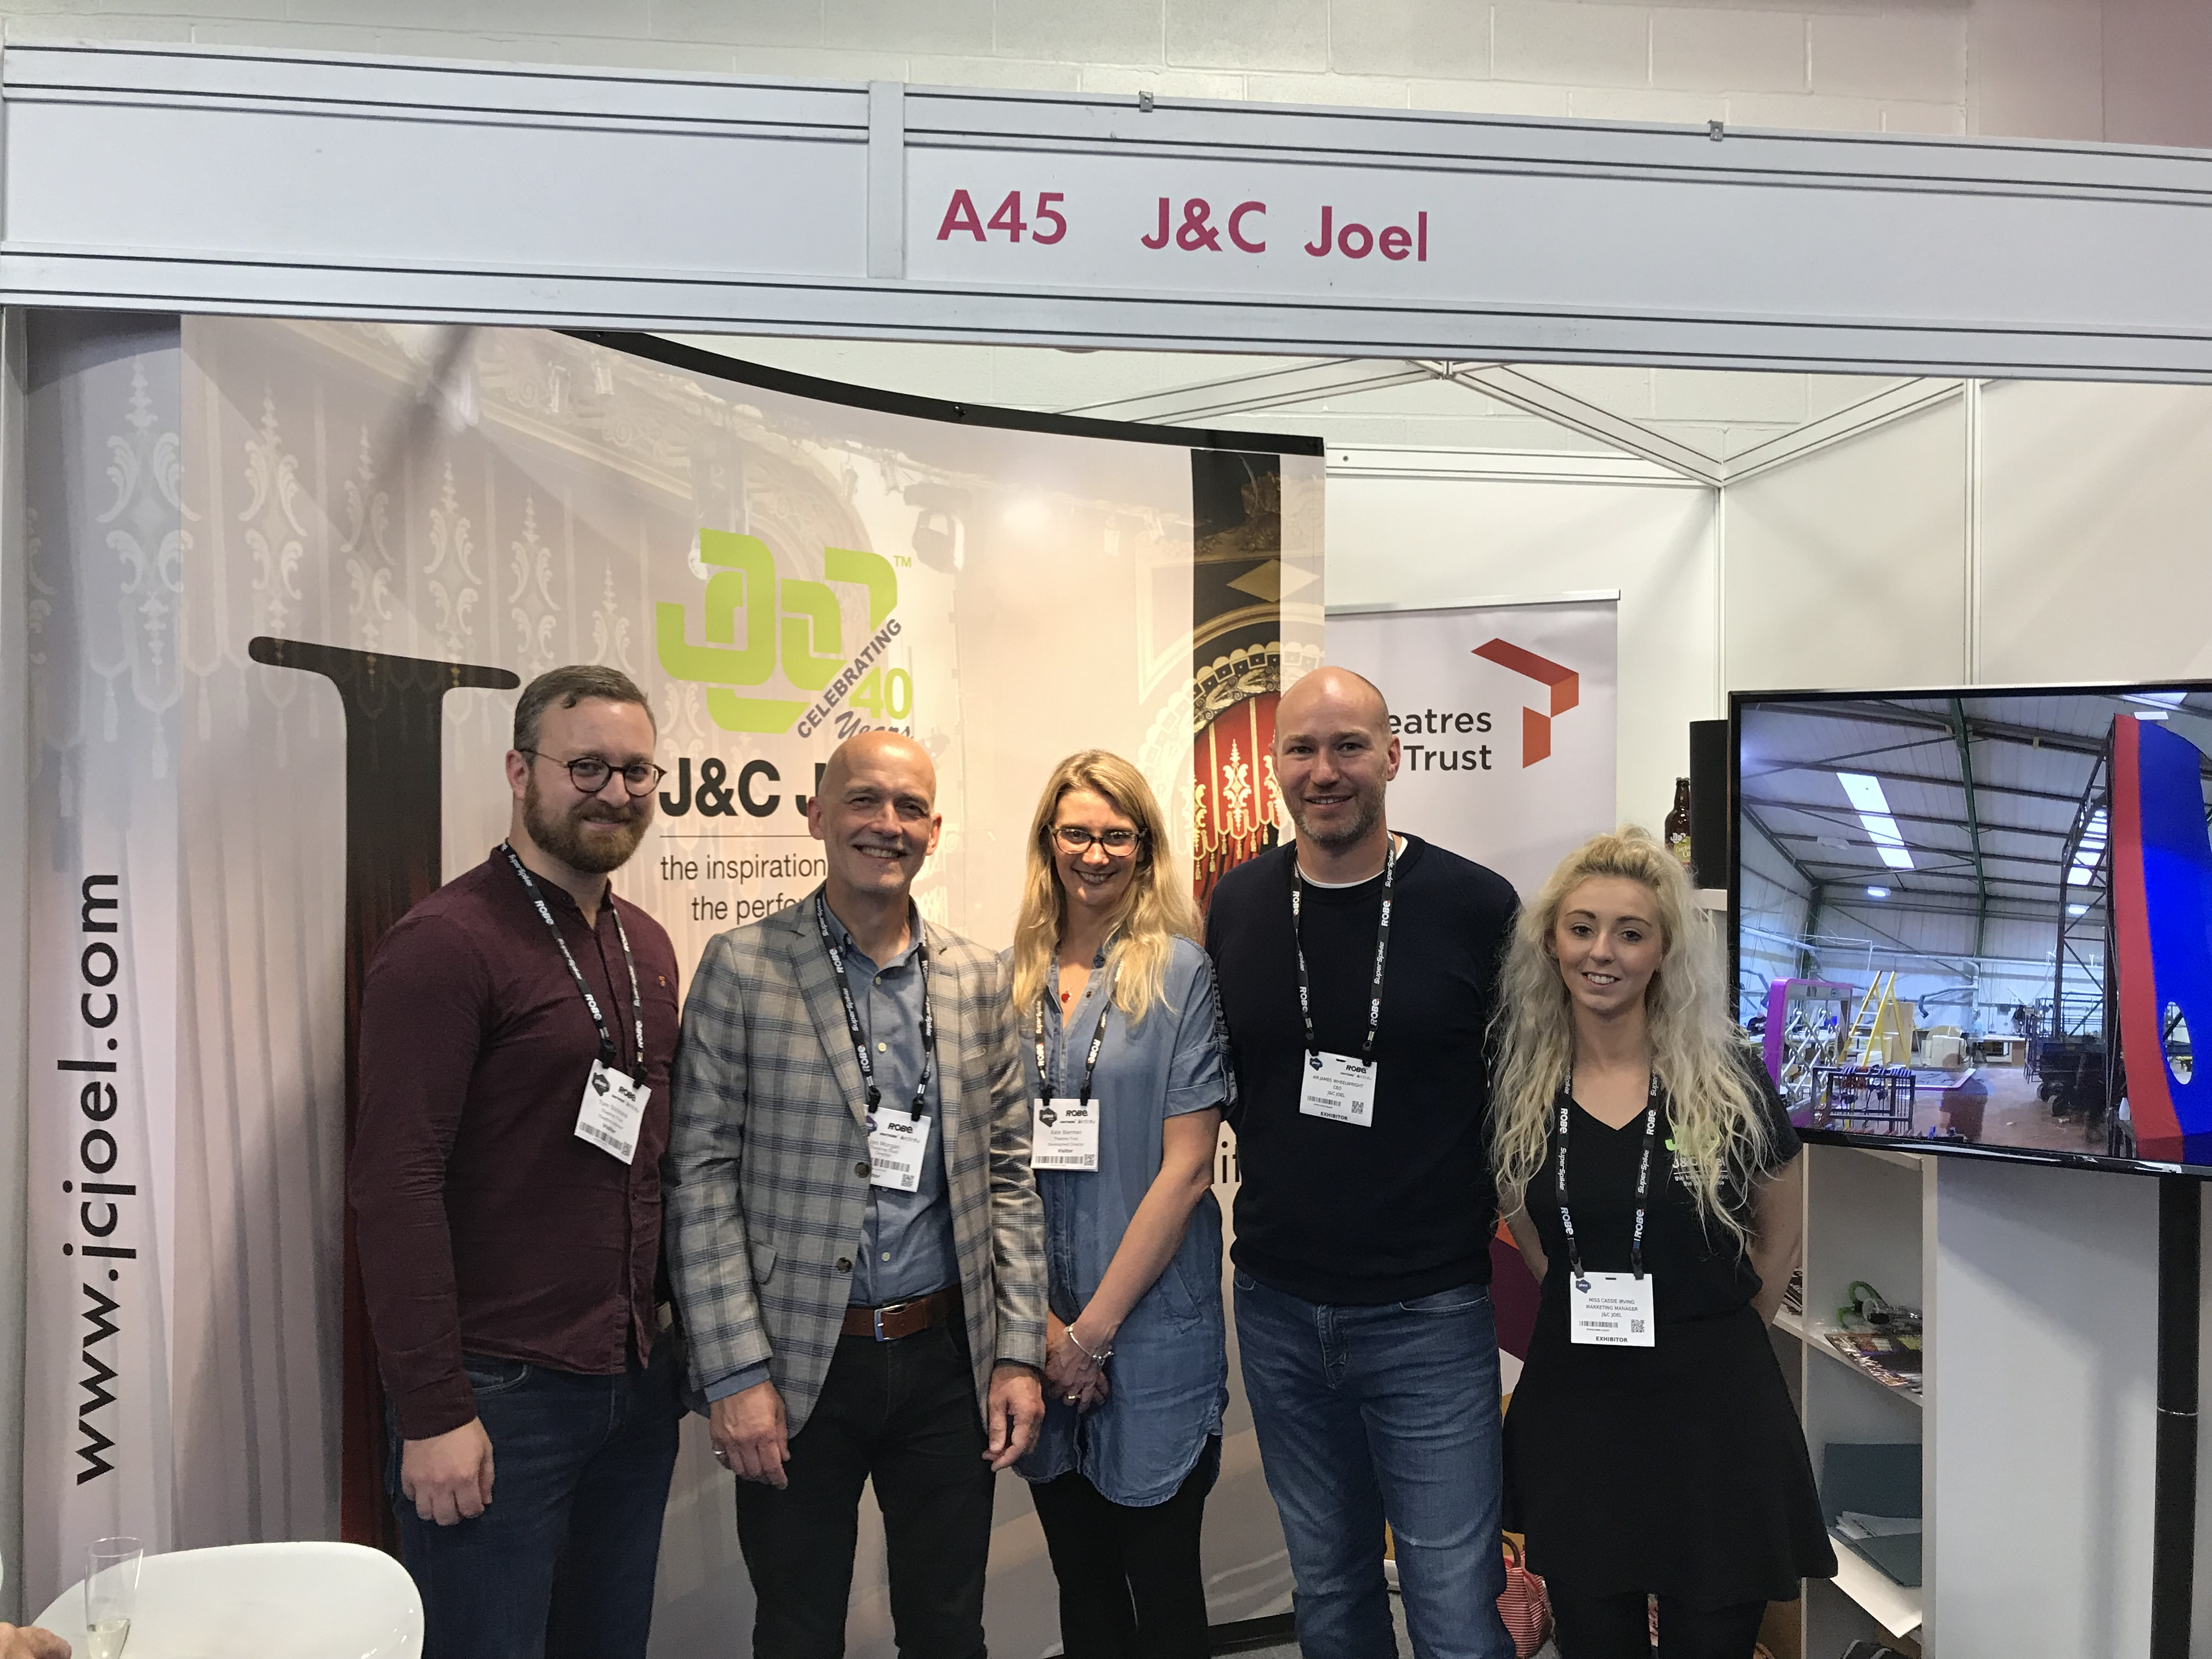 Tom, Jon, Kate of Theatres Trust with James & Cassie from J&C Joel